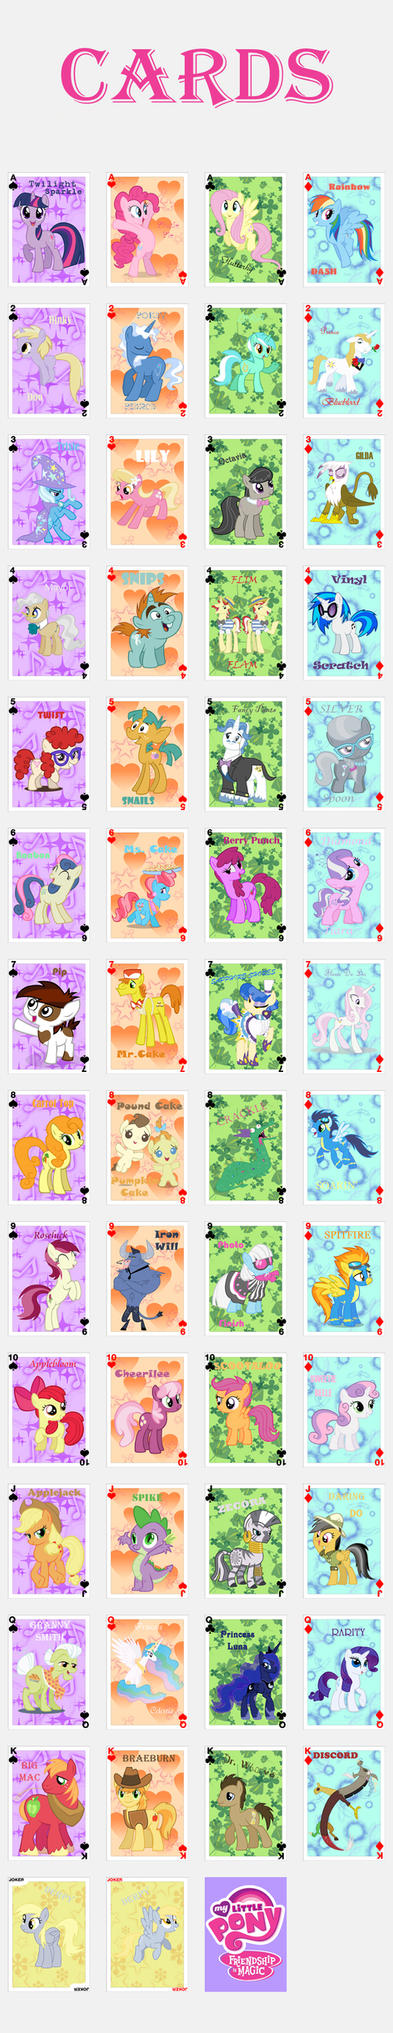 ... of MLP! They have released a new music video over on Youtube to help build the.Seating for all gaming applications including: slot, poker, blackjack, ...